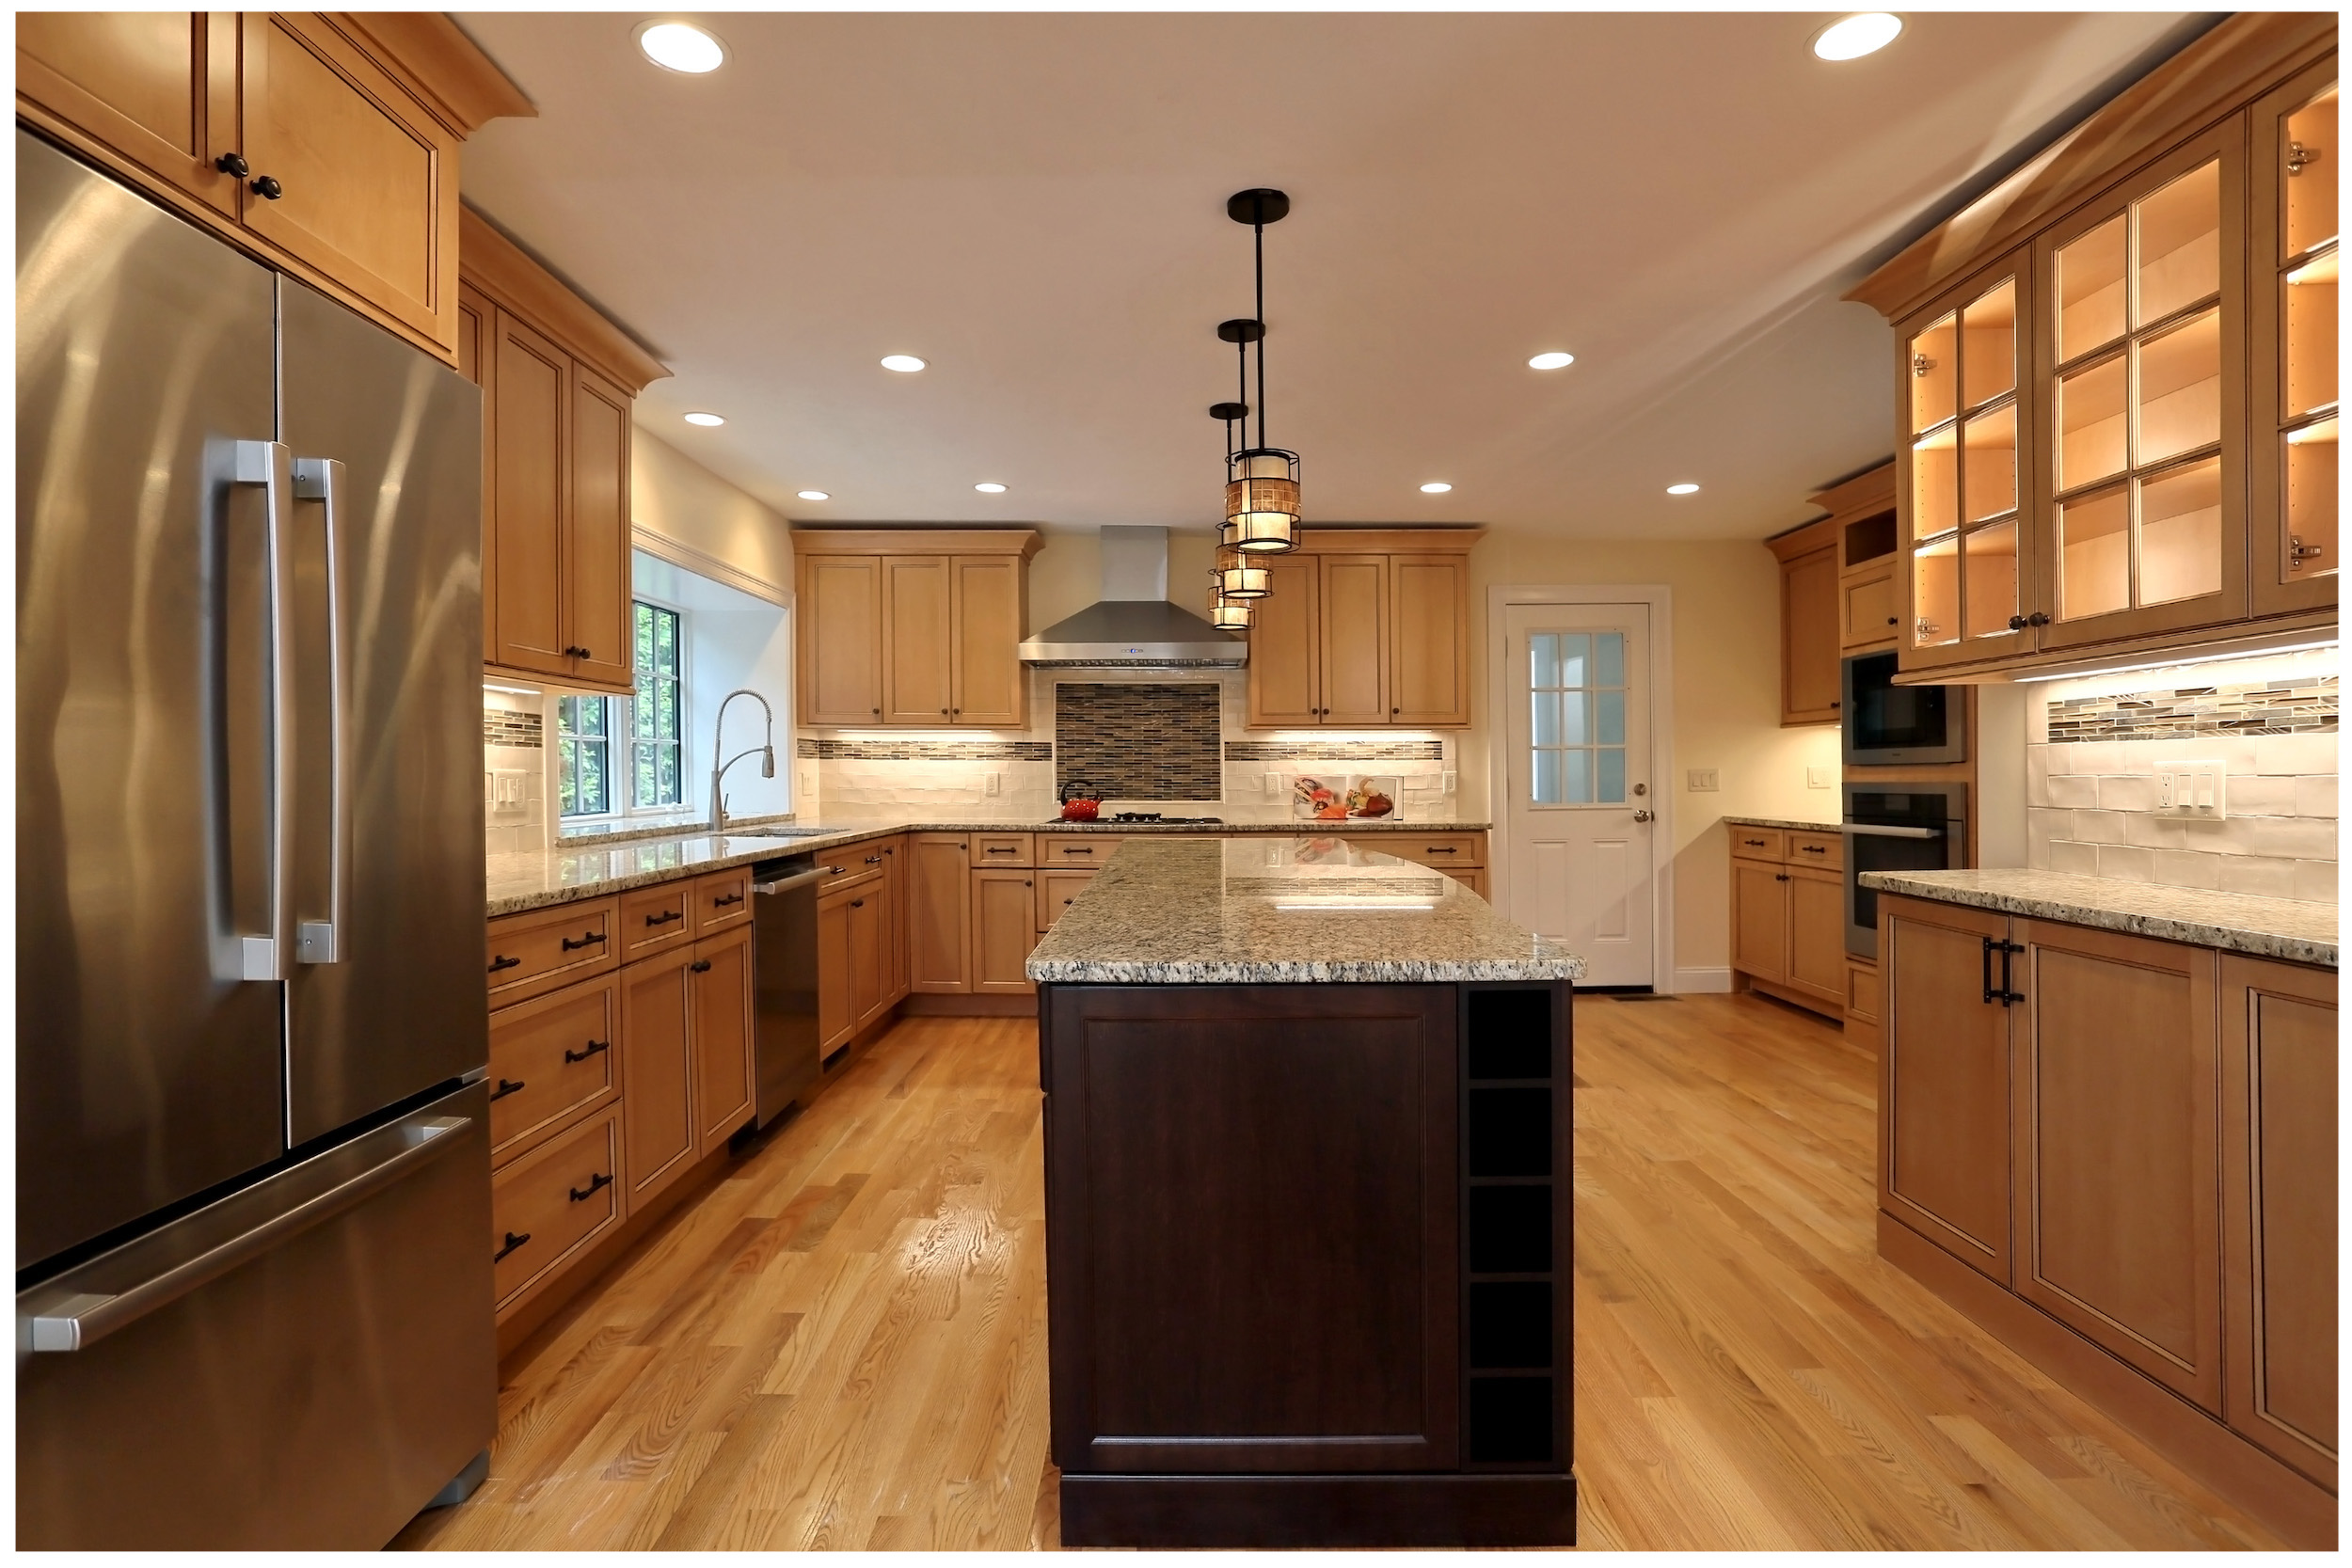 KitchenVisions-New-Traditional-Kitchen-ChestnutHill-6E9C8364rt-12x8-300.jpg